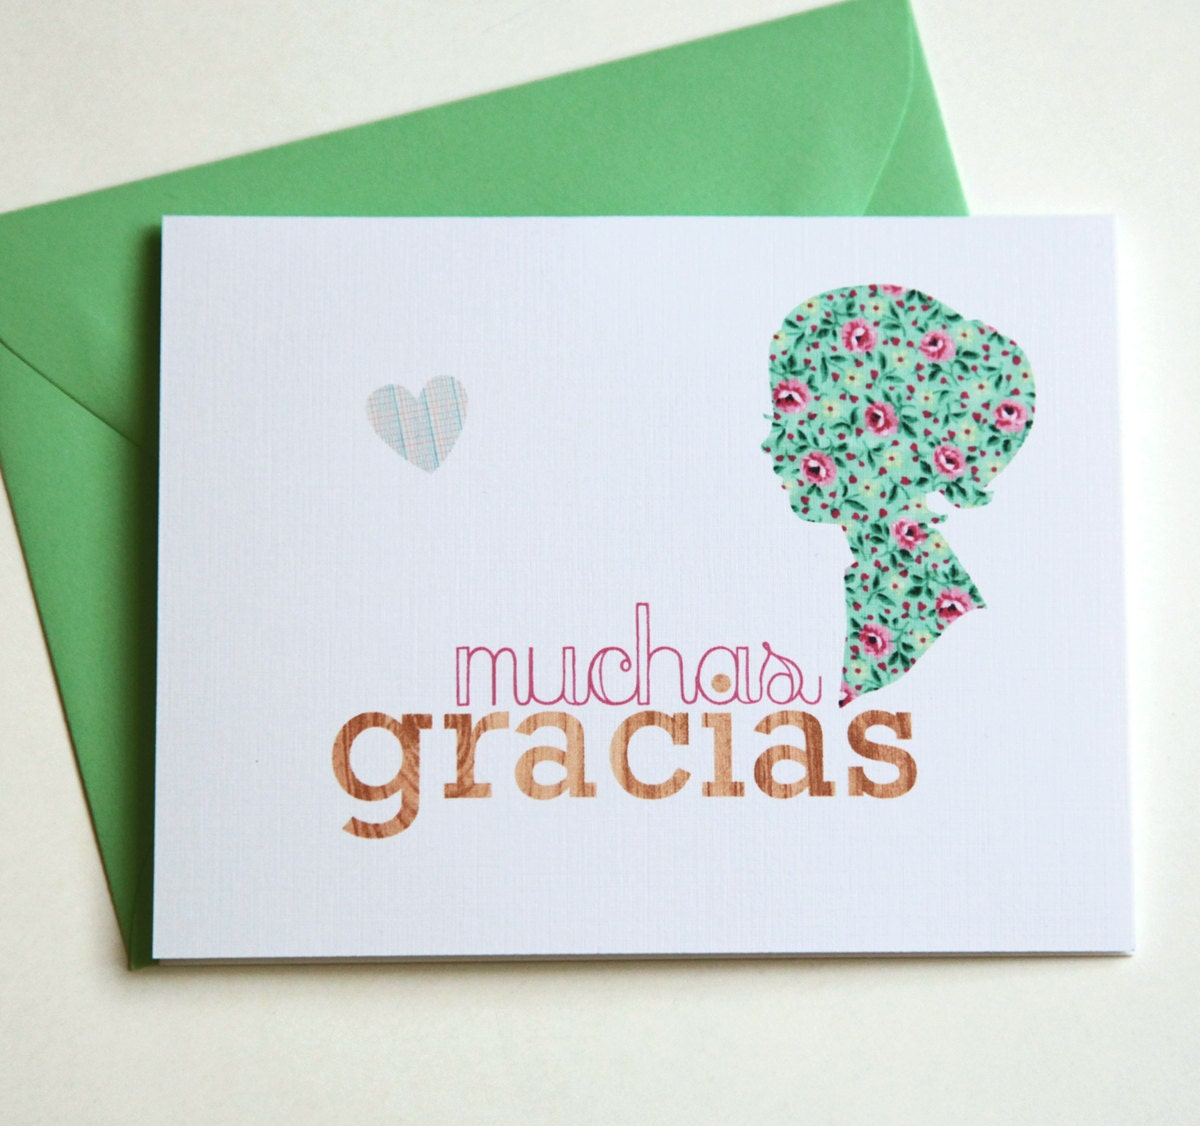 handmade thank you cards in spanish muchas gracias set of 4